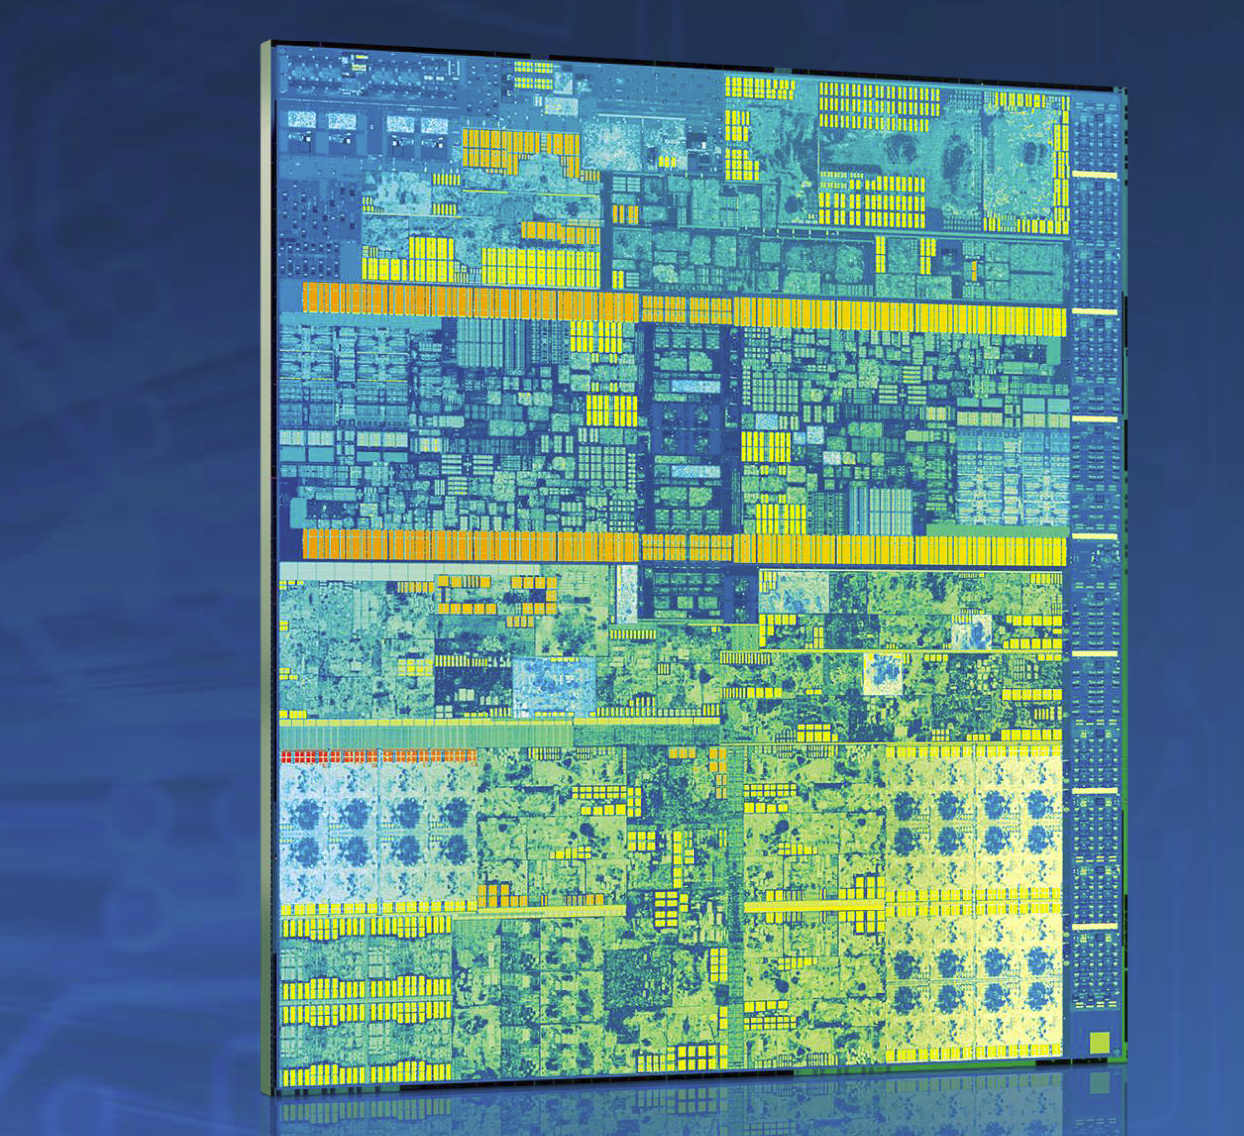 Intel Kaby Lake and Skylake processors hit with microcode bug